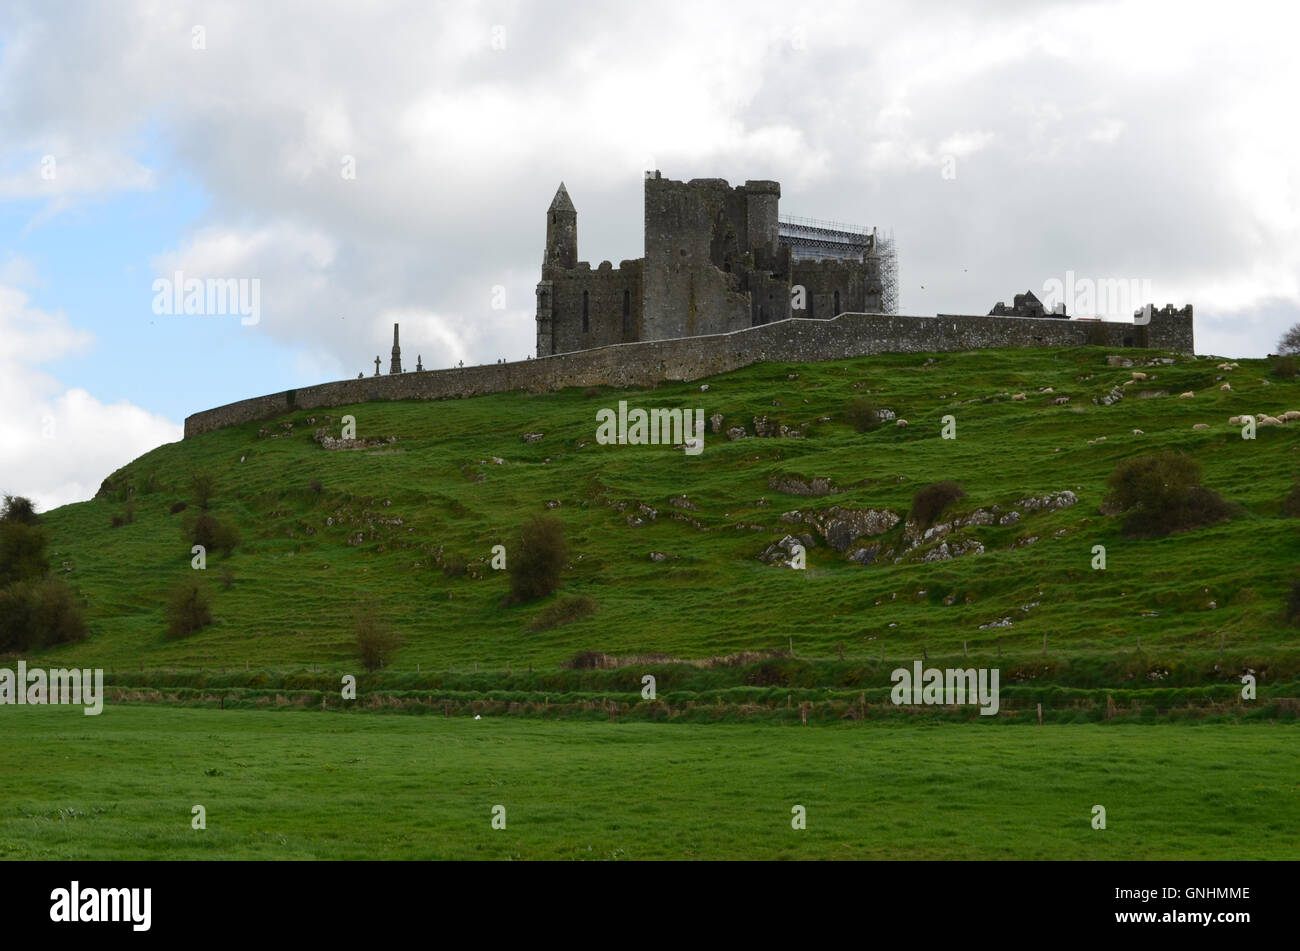 Lush green fields in front of the Rock of Cashel. - Stock Image